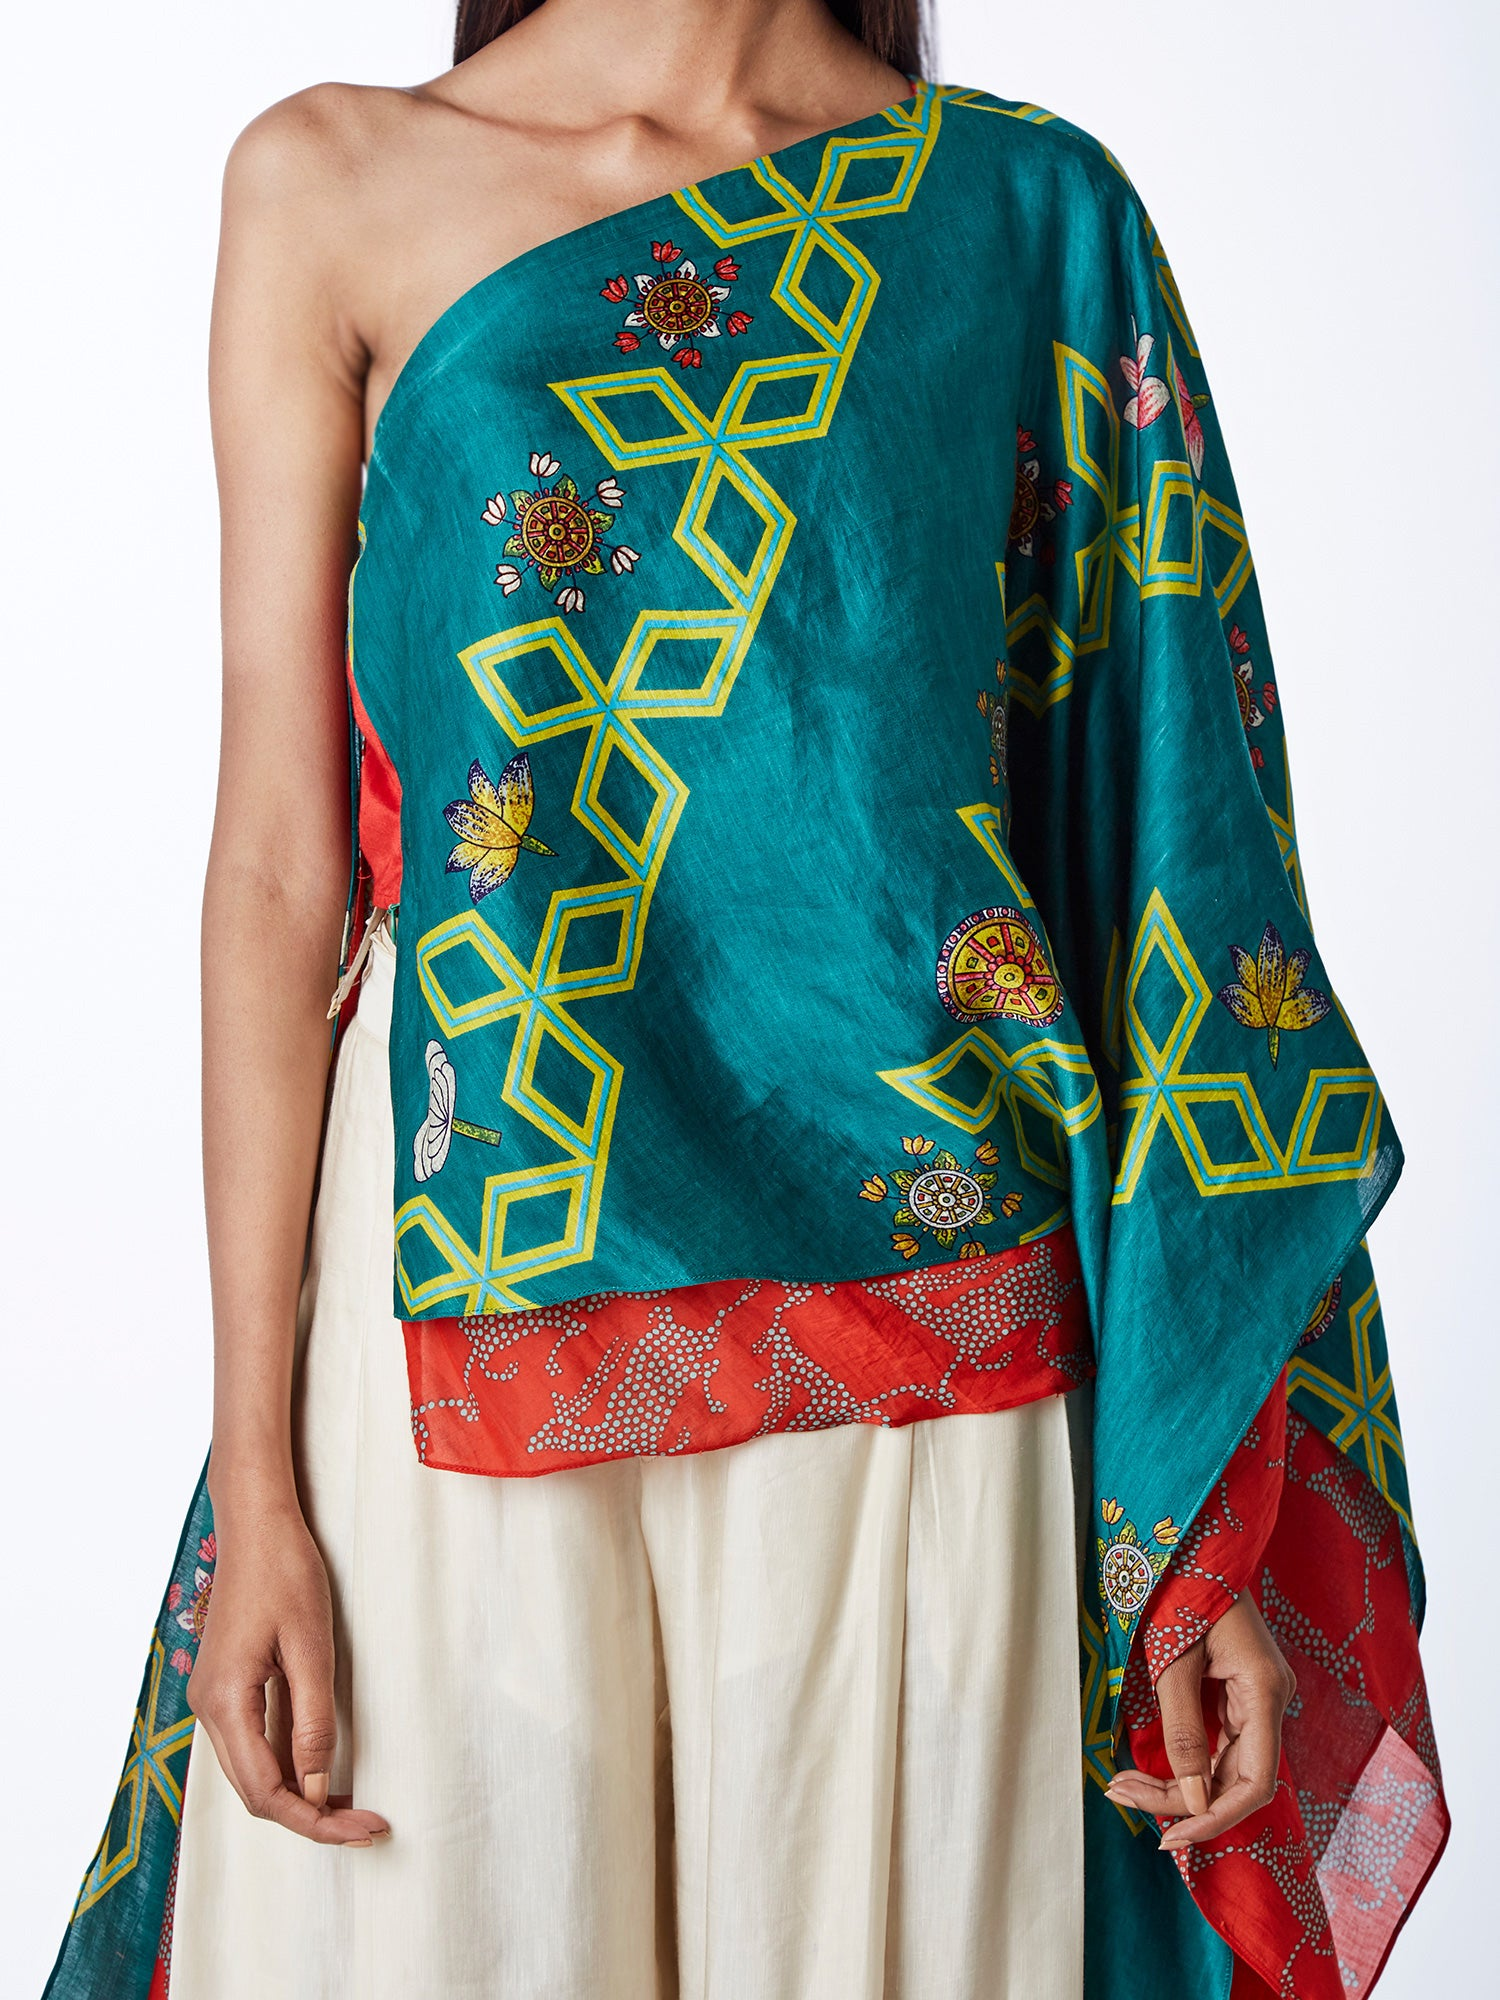 Bundi Teal Diagonal Print Cape